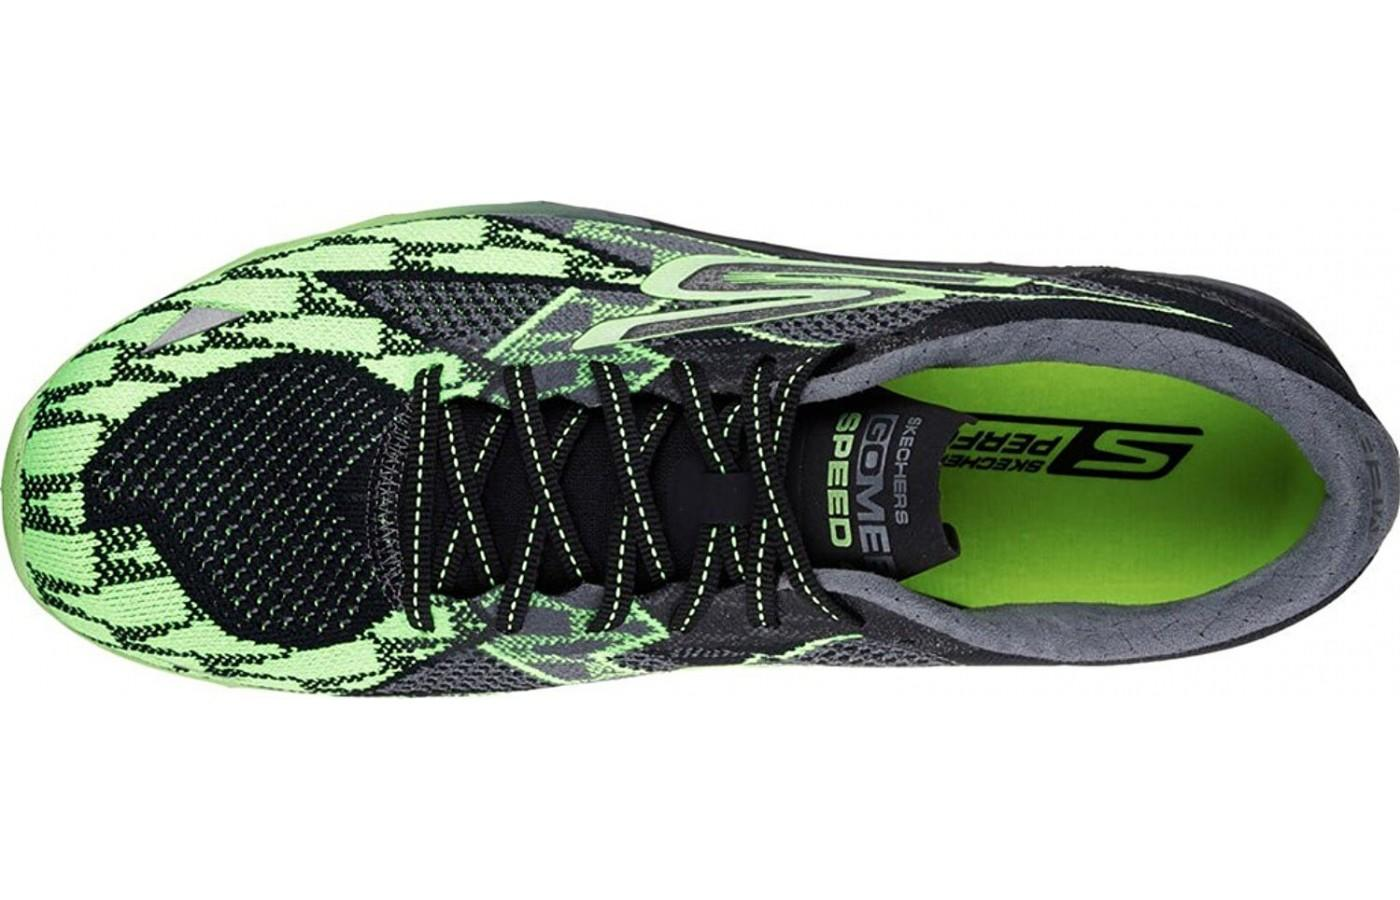 Breathable, lightweight mesh upper